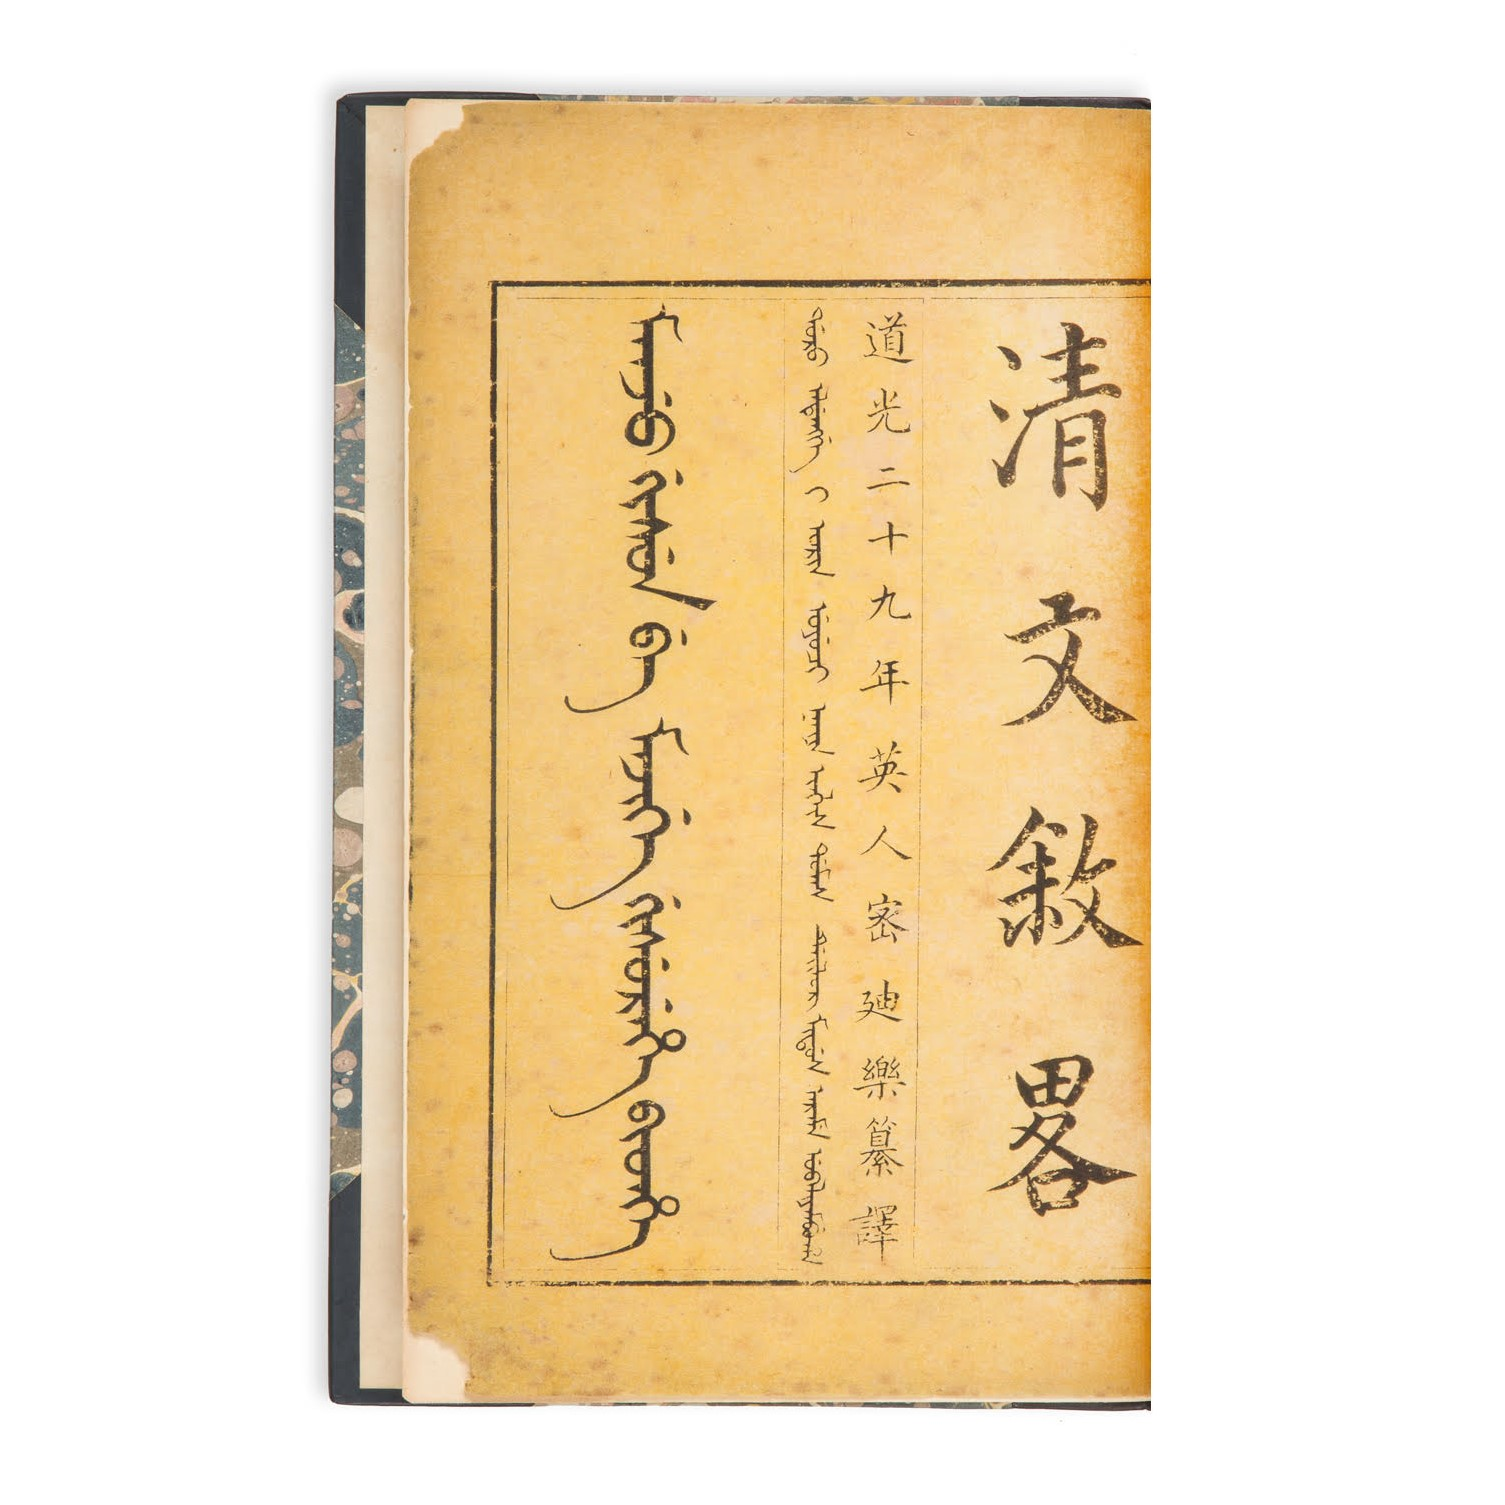 MEADOWS, Translations from the Manchu, 1849